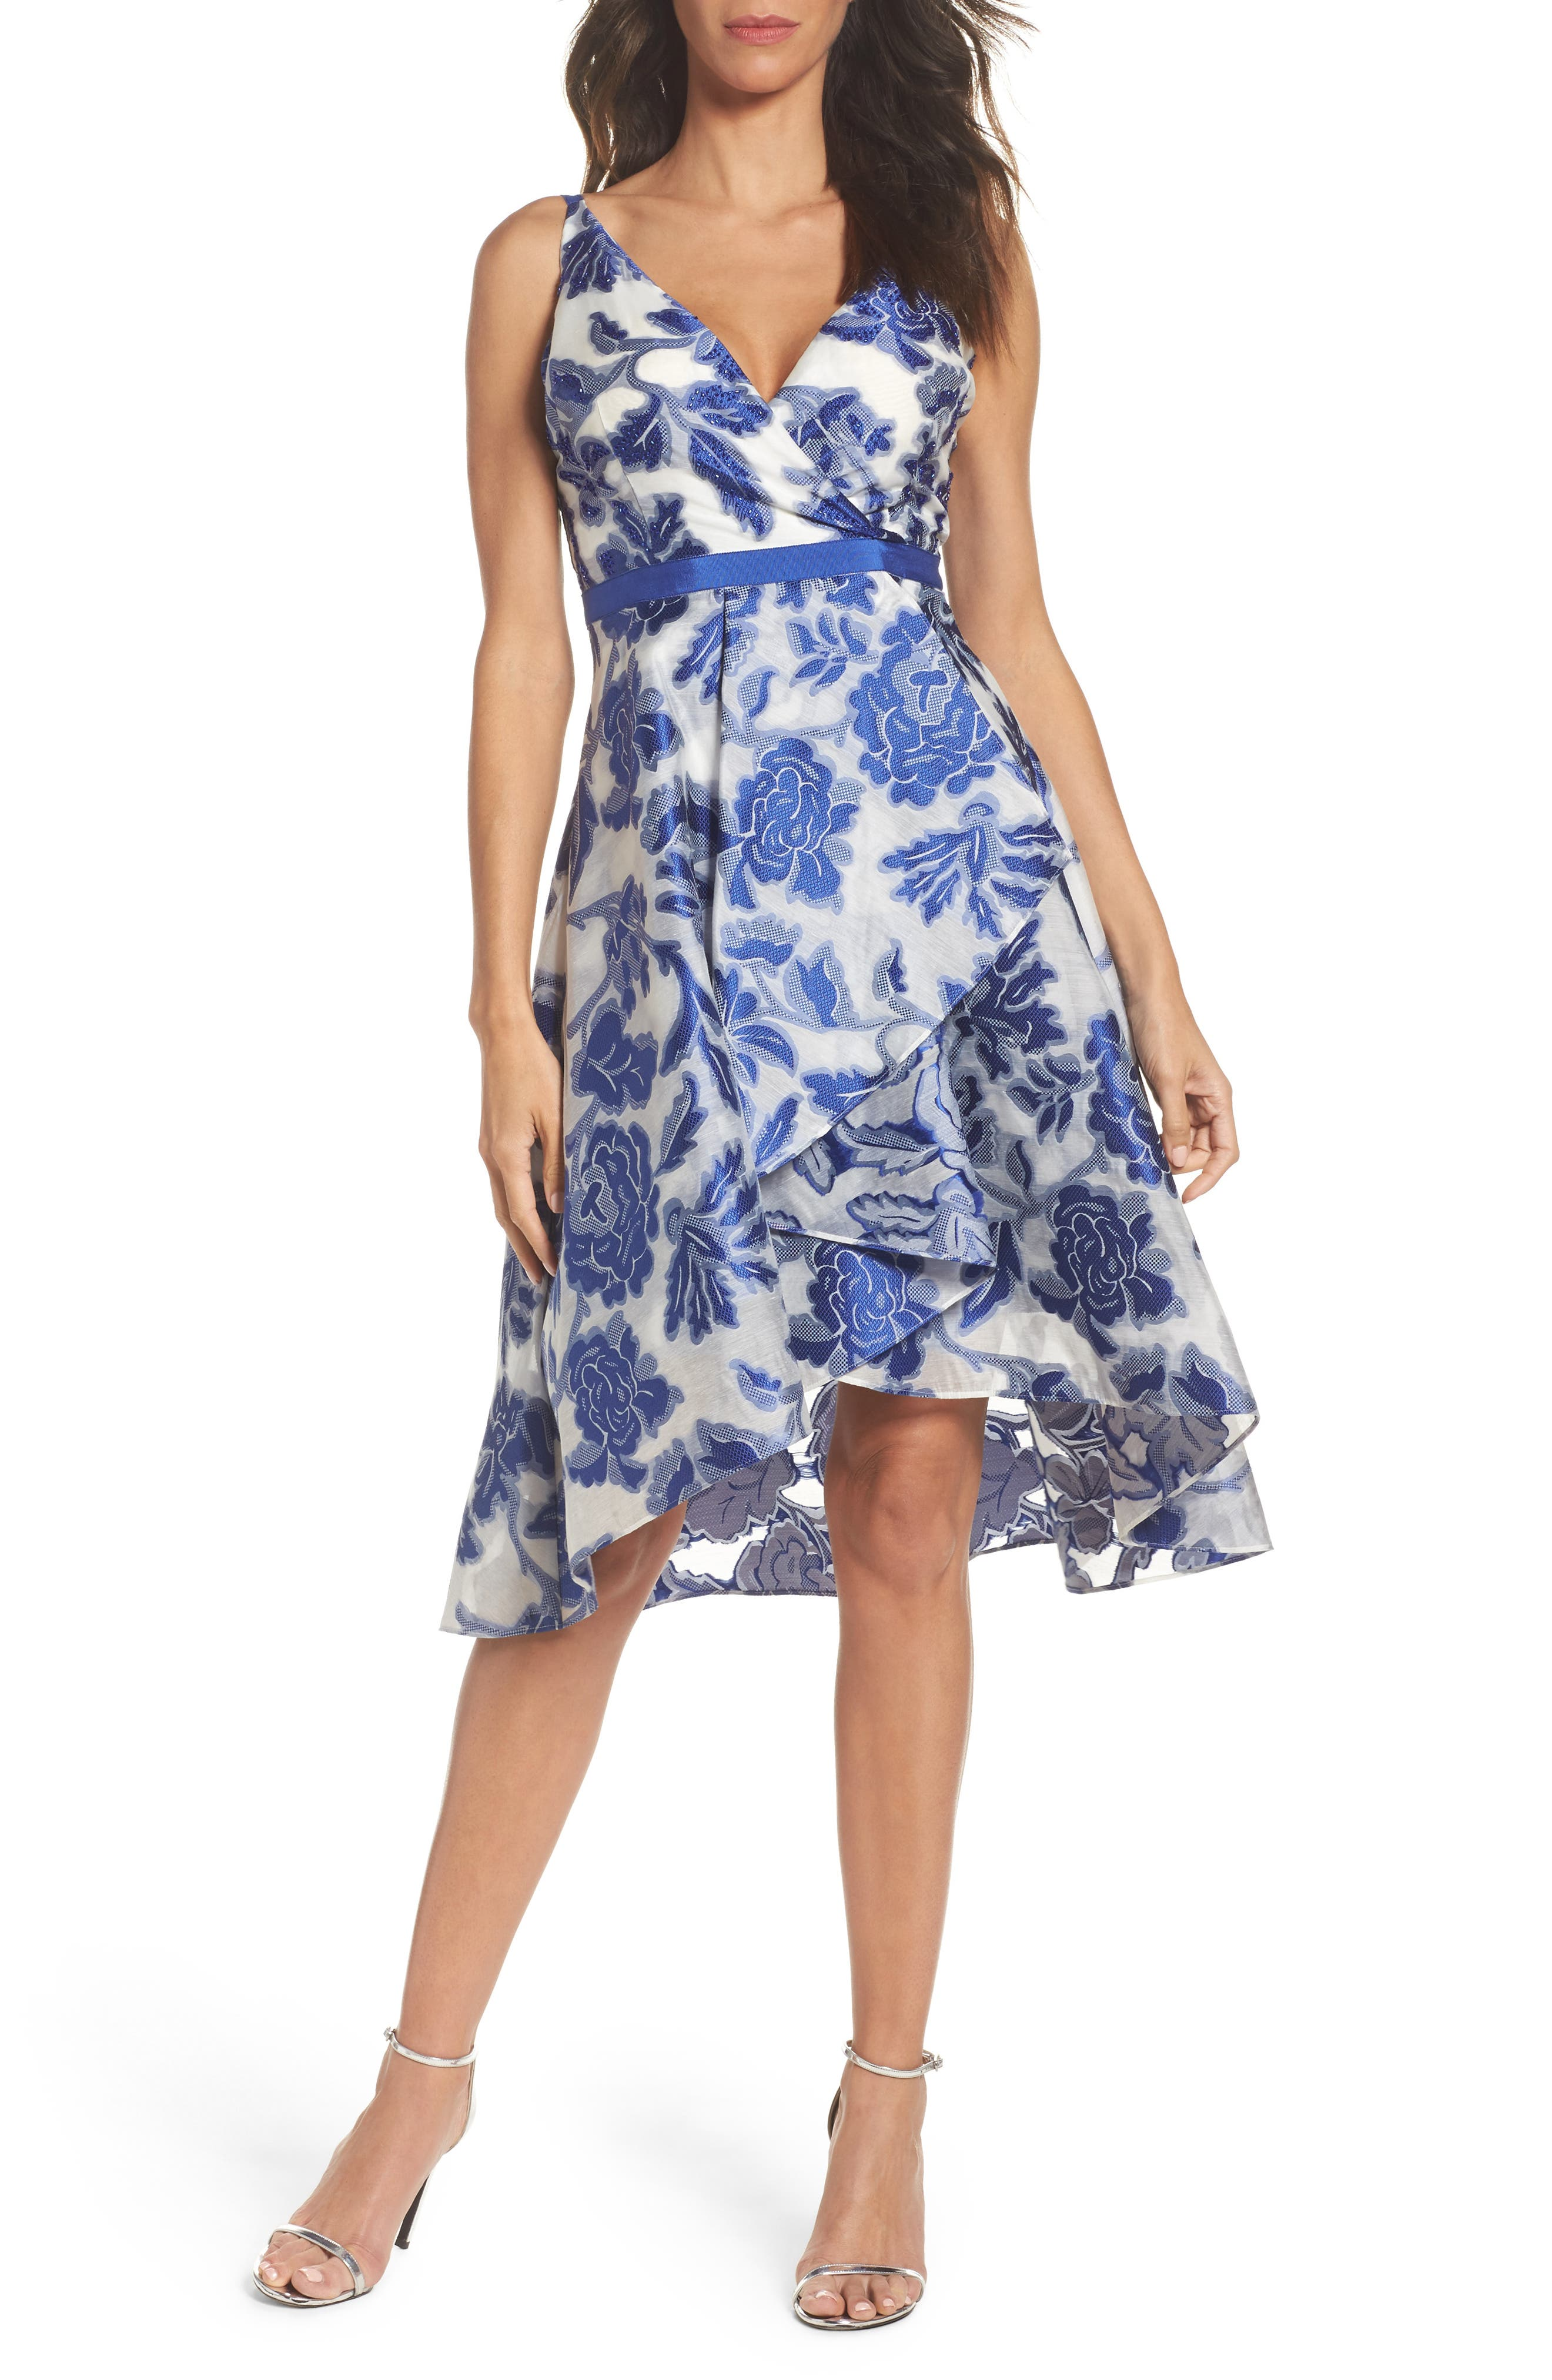 Main Image - Adrianna Papell Burnout Jacquard Fit & Flare Dress